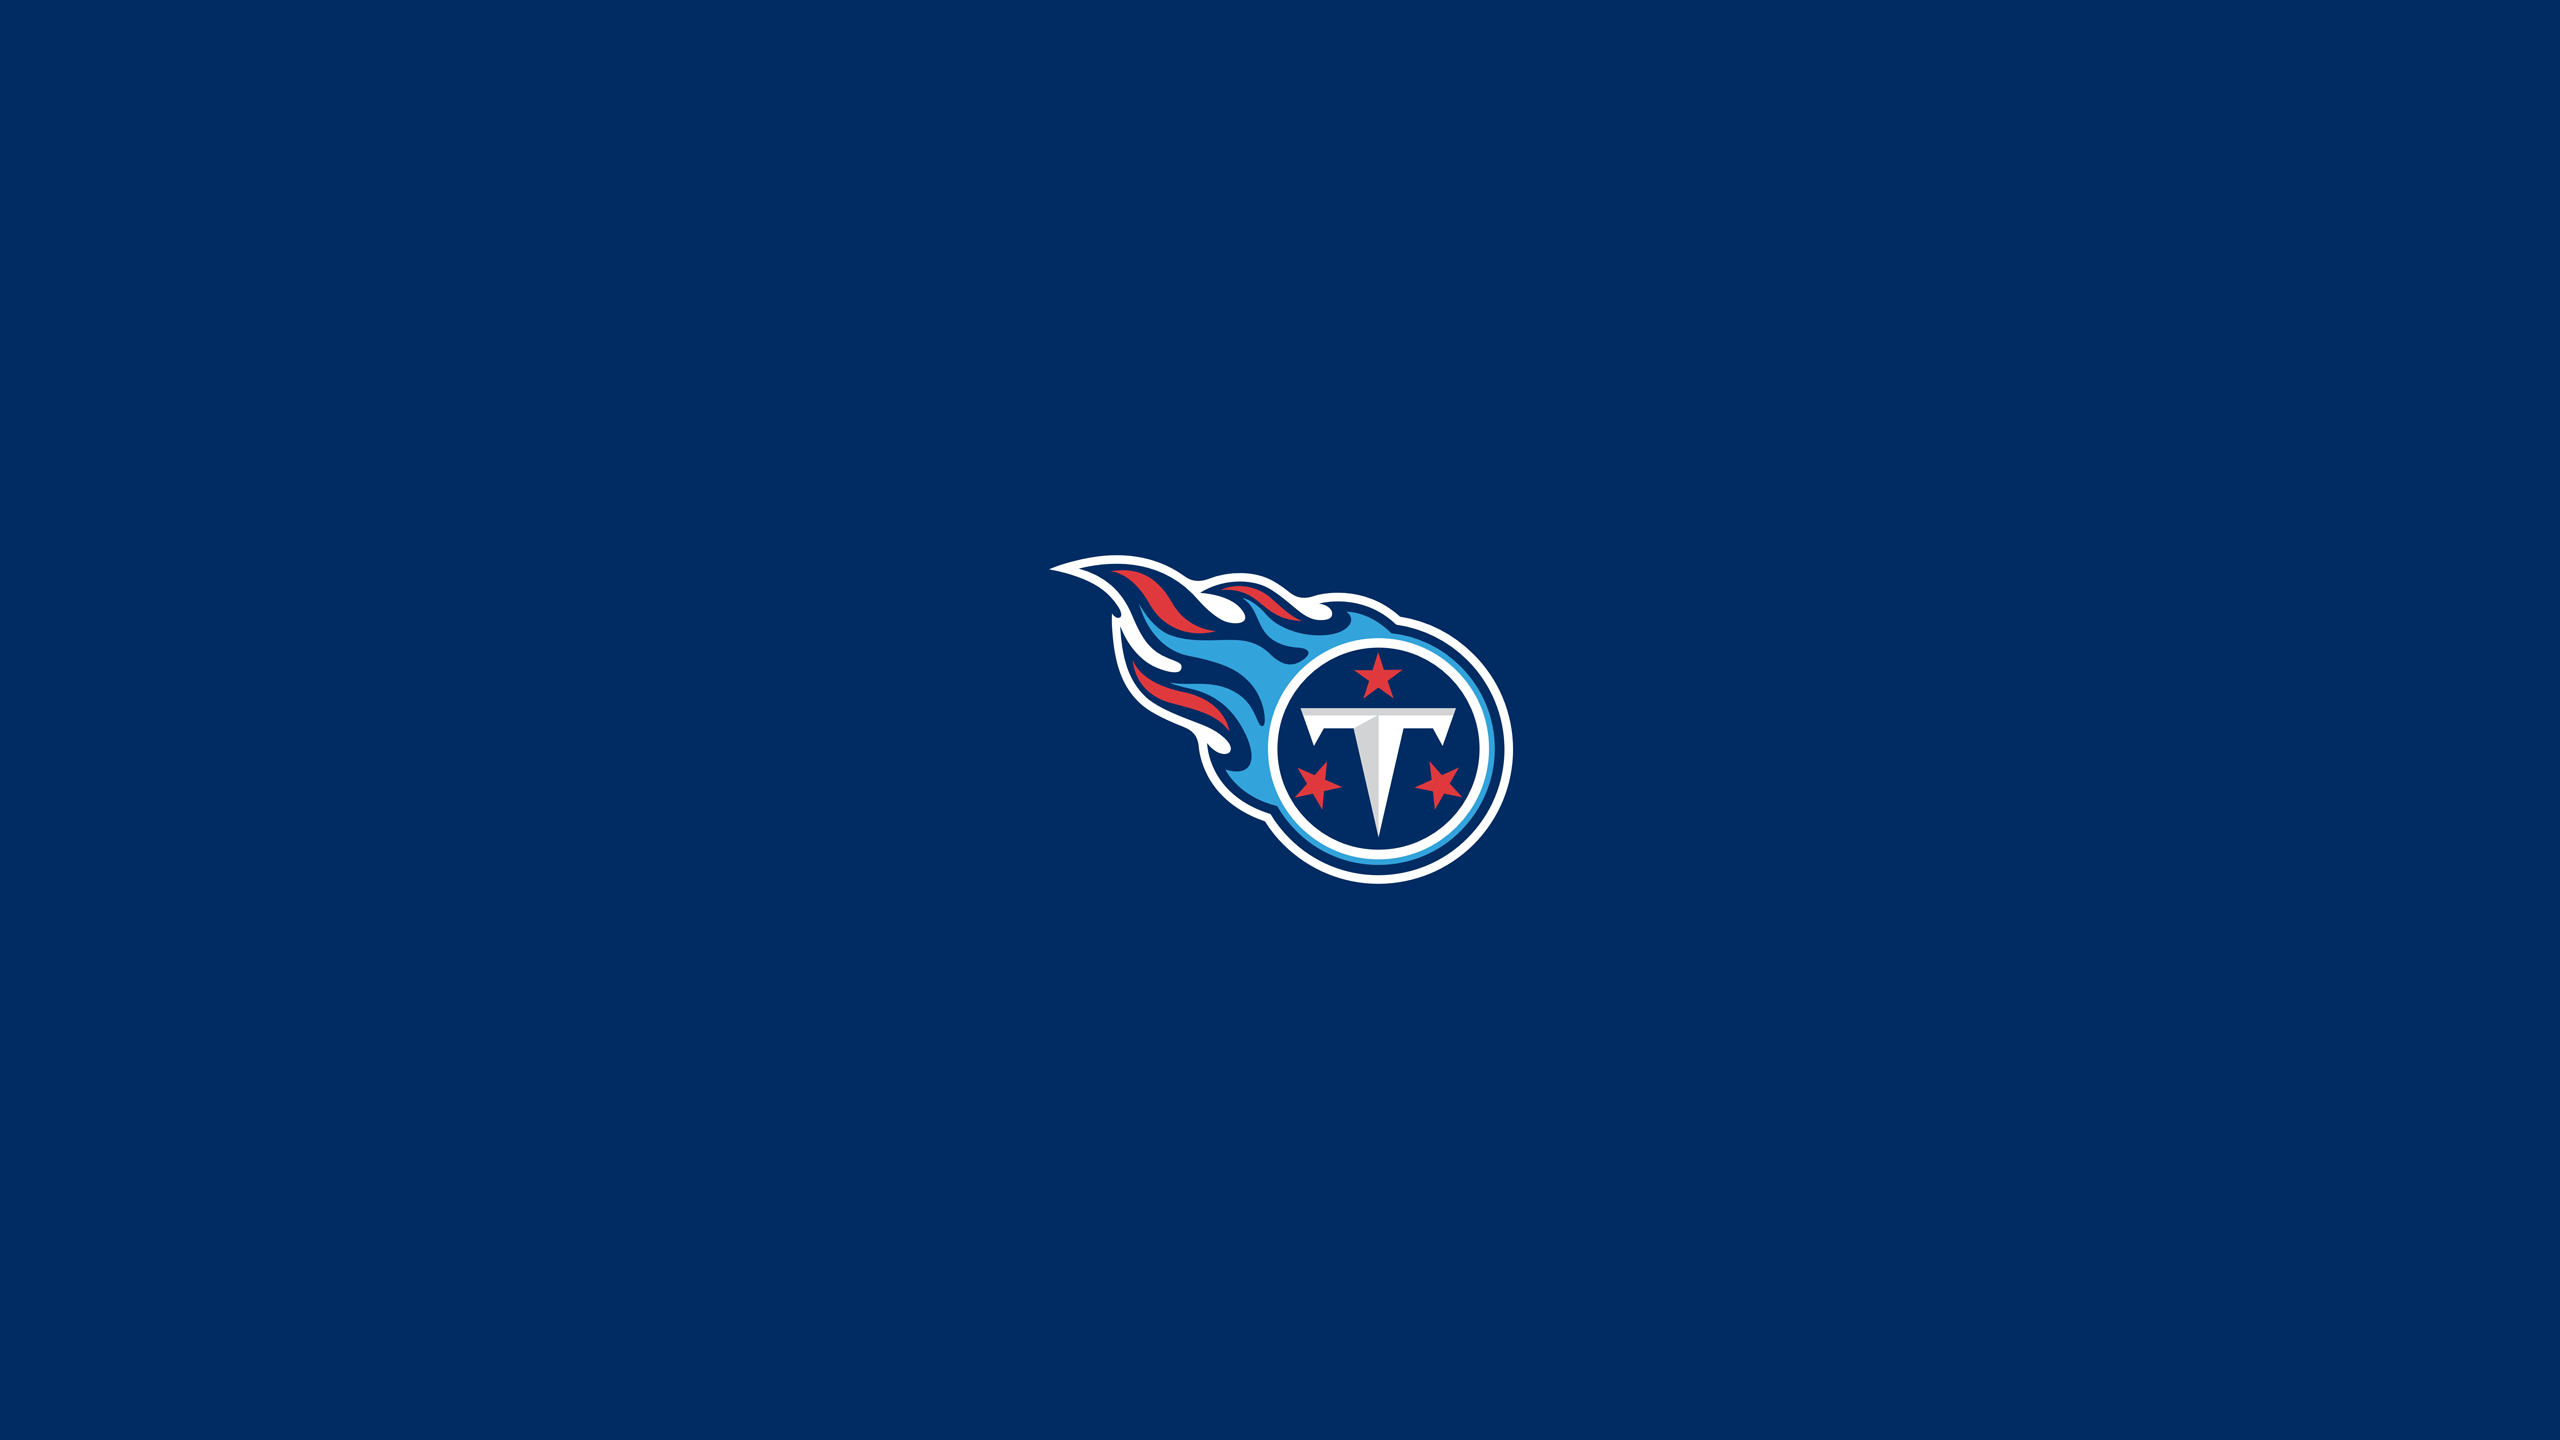 Tennessee Titans Wallpapers 2560x1440 px | B.SCB